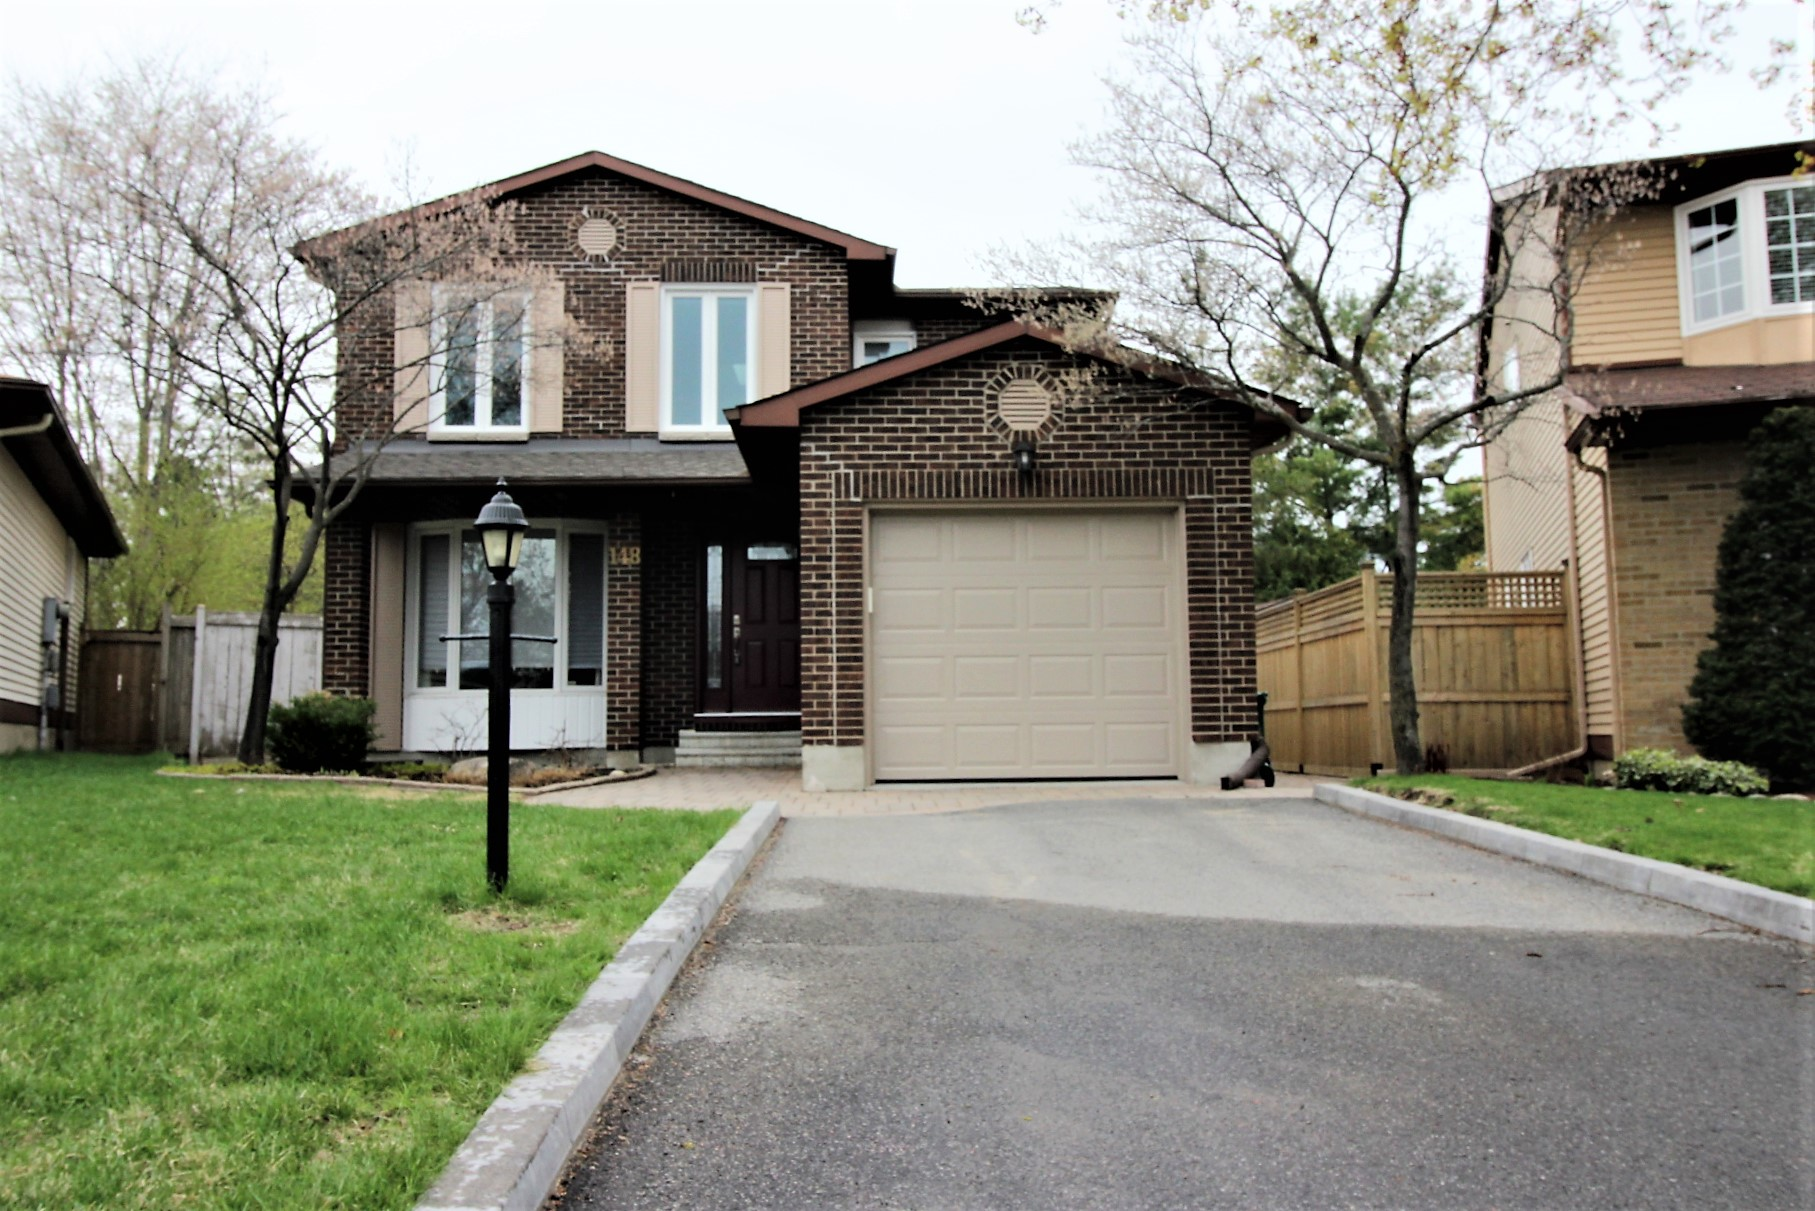 148 Pinetrail Cres - Wonderful 3 Bedroom RENTAL in highly desired Centrepointe area!